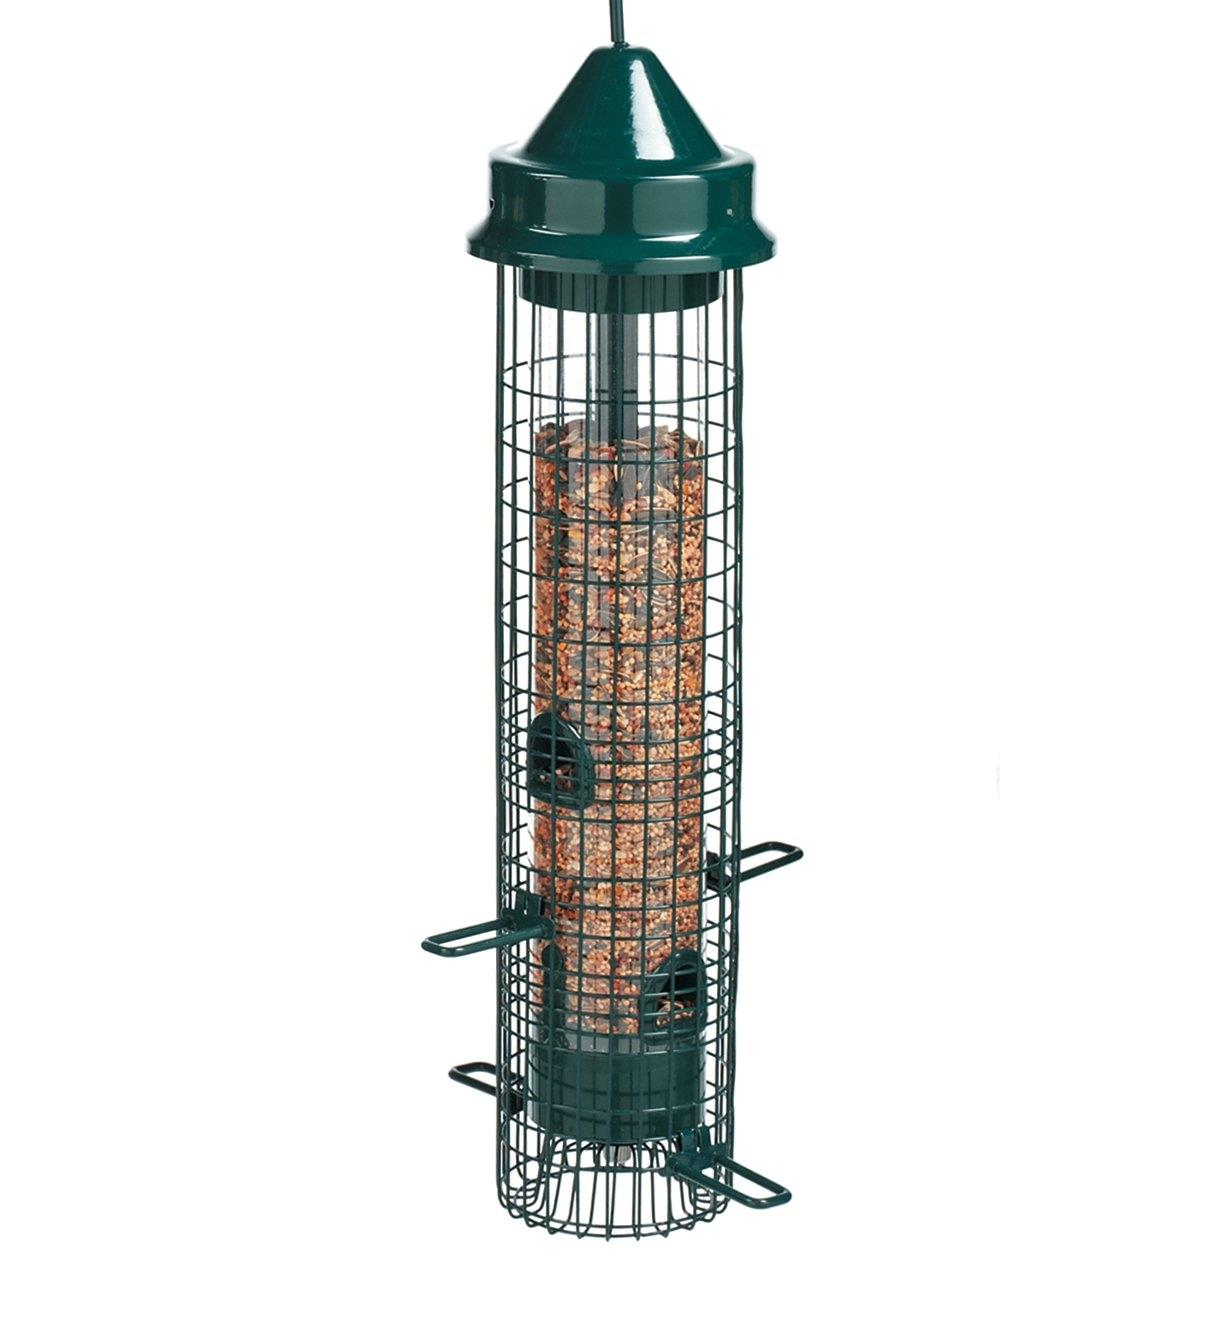 AG327 - Squirrel Buster Classic Feeder